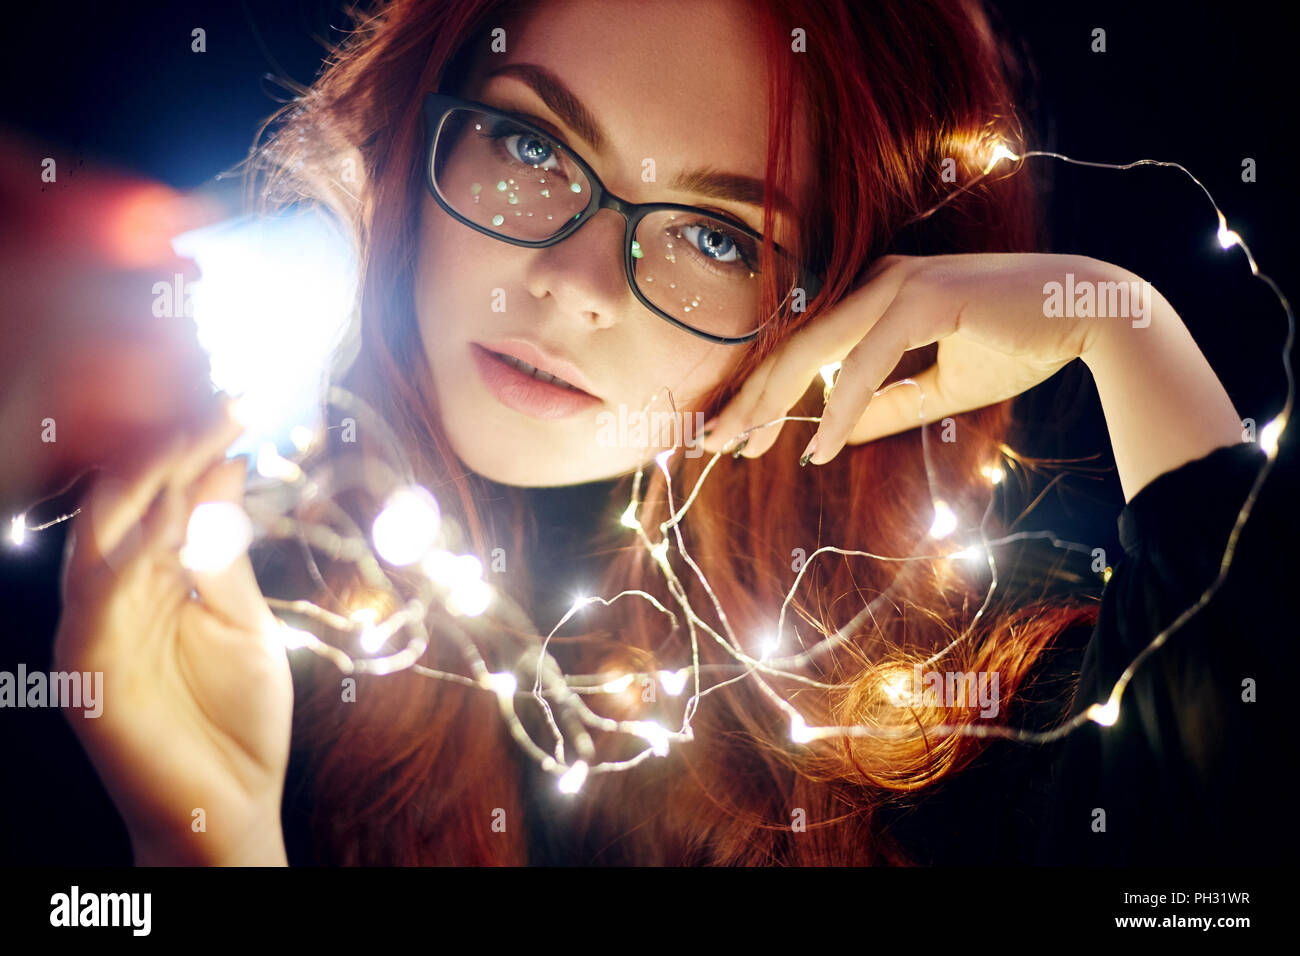 7bde57e687 Art portrait of a woman with red hair in Christmas lights. Girl in glasses  with